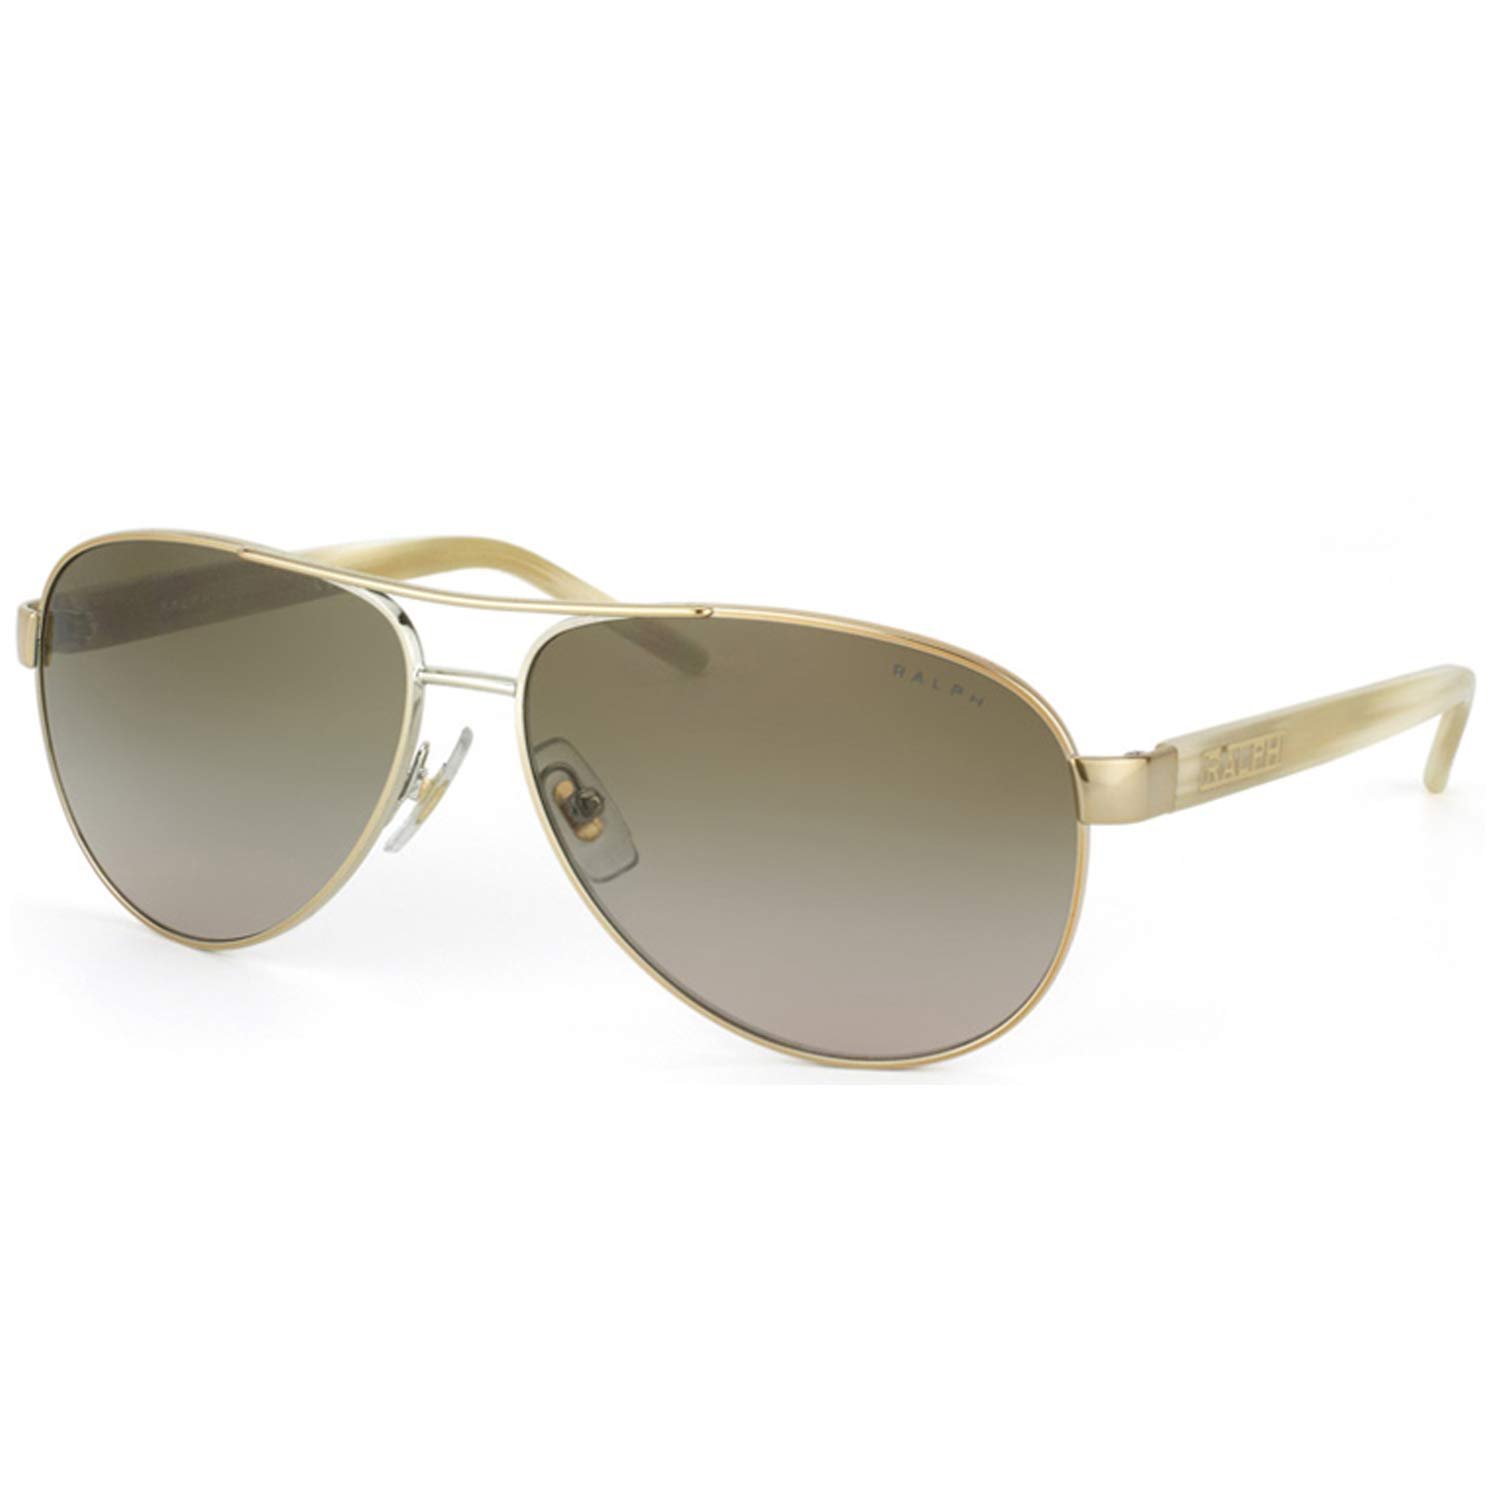 Ralph By Ralph Lauren RL-RA4004-101/13 Gold and Cream with Brown Gradient Lenses Women's Sunglasses